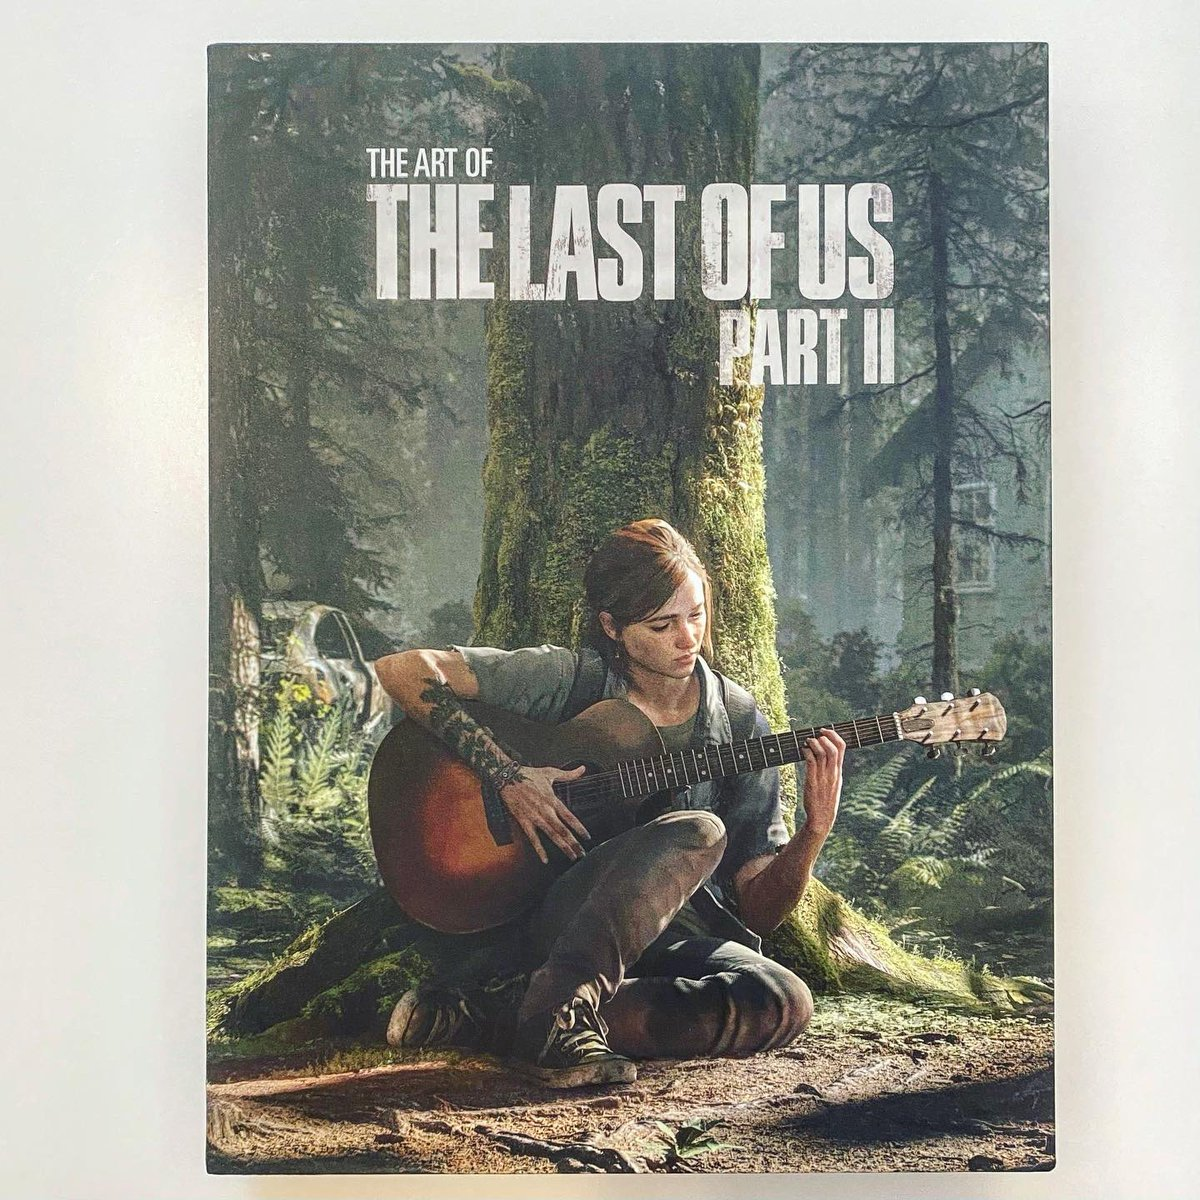 Finally got it :) so good and well done The Art of the Last of Us Part II Deluxe Edition #thelastofus2 #naughtydog #artbook #videogame #videogames #forest #deluxeedition #book #artbook #chill  @TheLastofUsPS @Naughty_Dog https://t.co/LBeJd3X2Rf